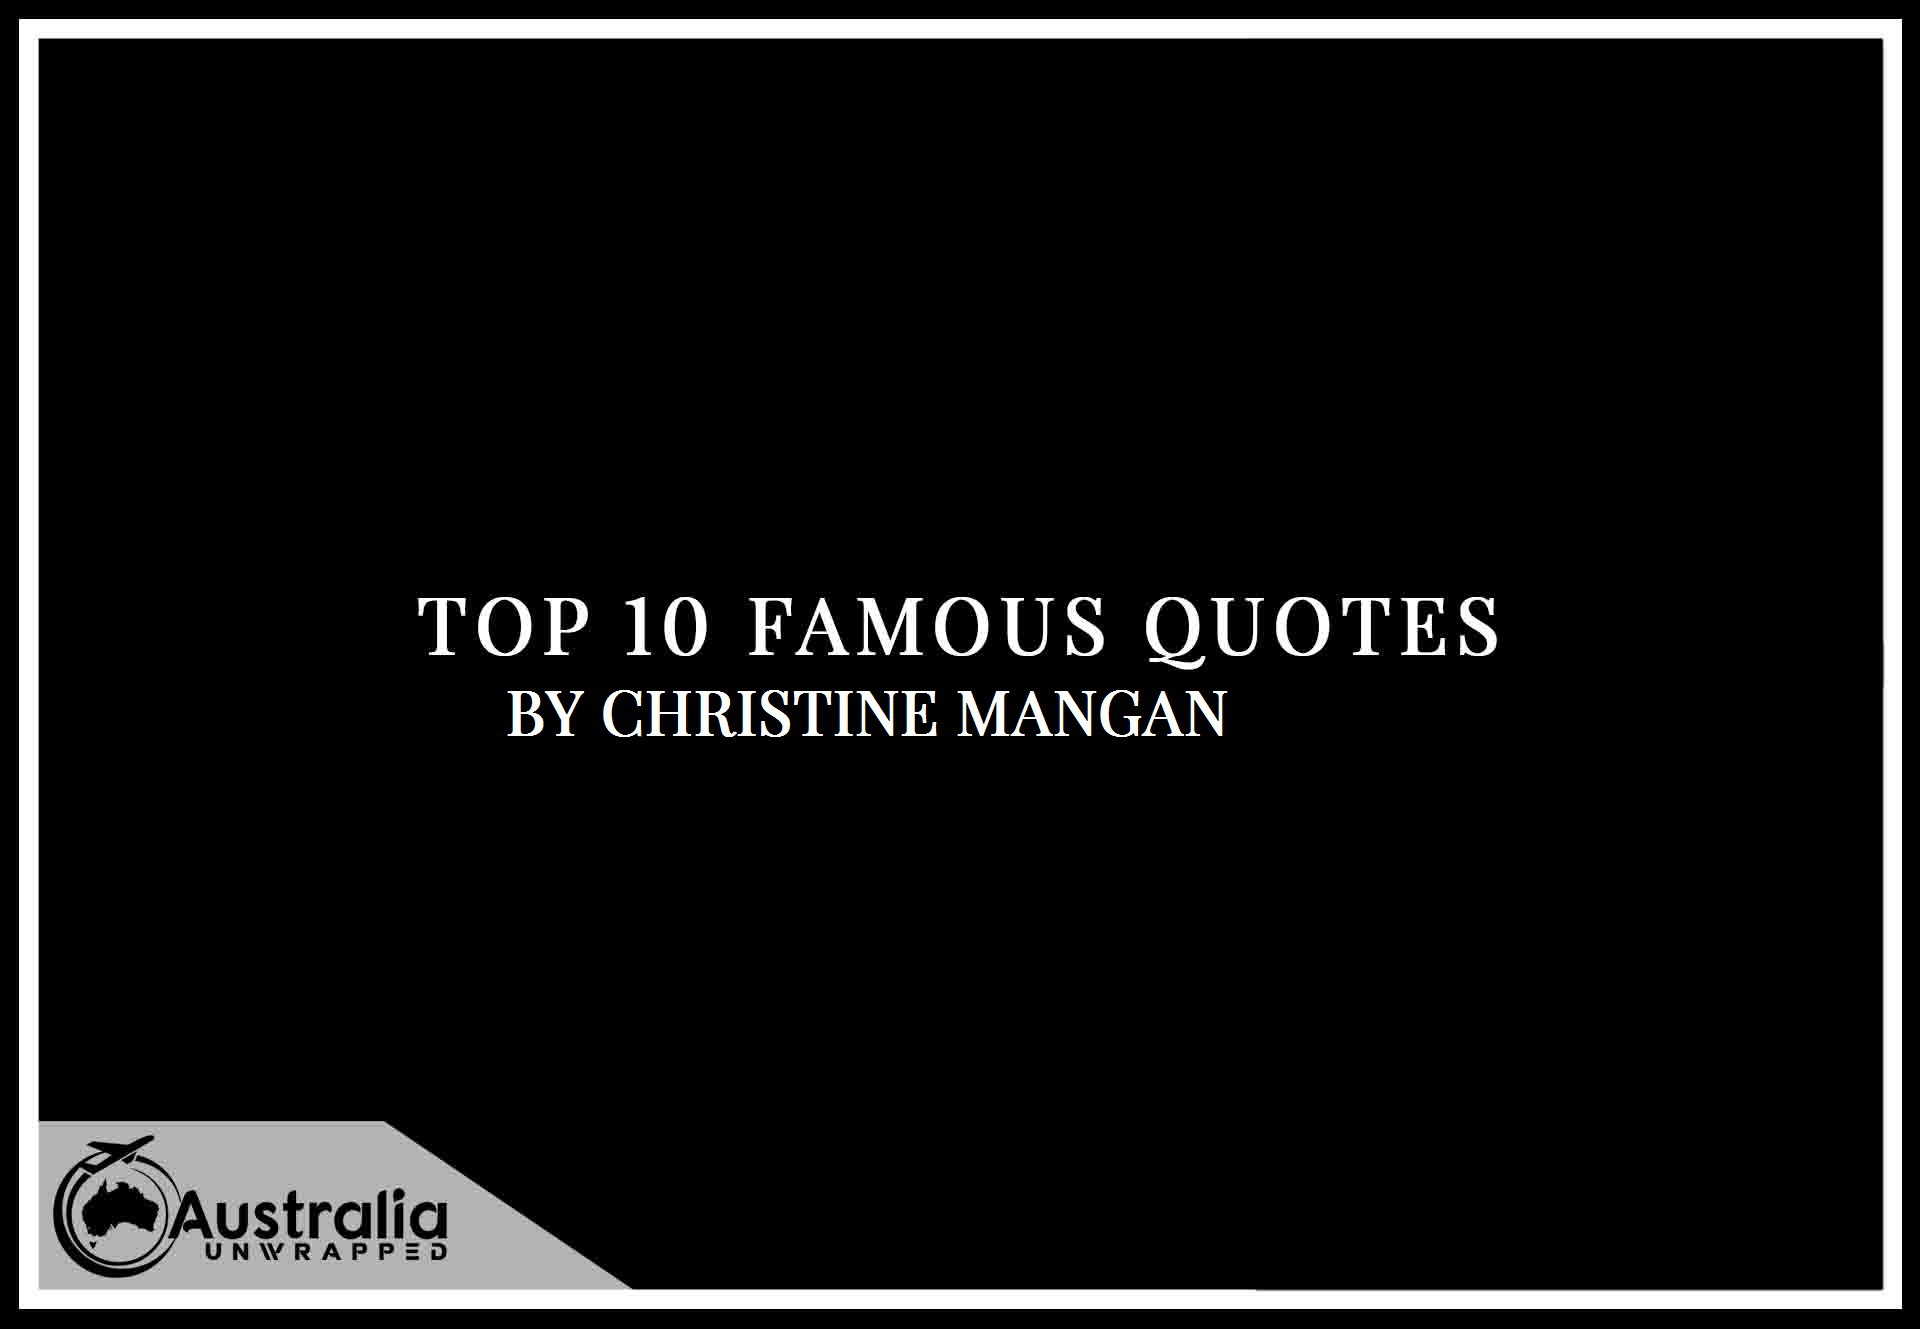 Christine Mangan's Top 10 Popular and Famous Quotes